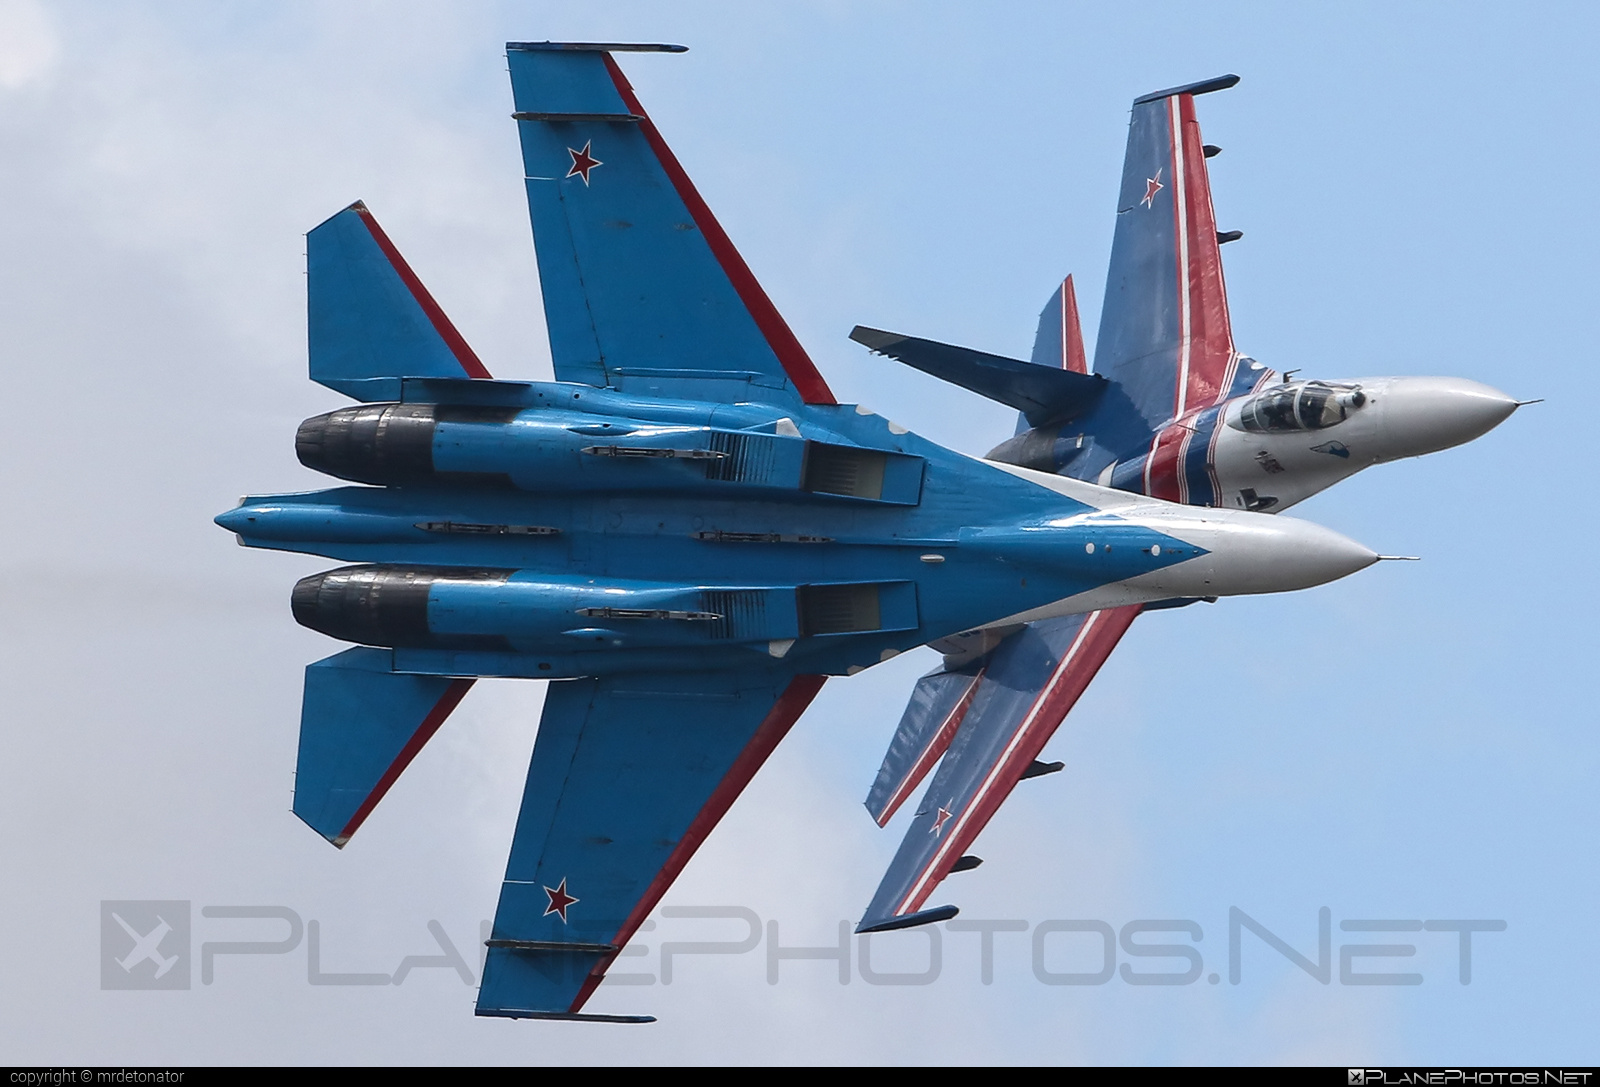 Sukhoi Su-27P - 03 operated by Voyenno-vozdushnye sily Rossii (Russian Air Force) #maks2015 #russianknights #su27 #su27p #sukhoi #sukhoi27